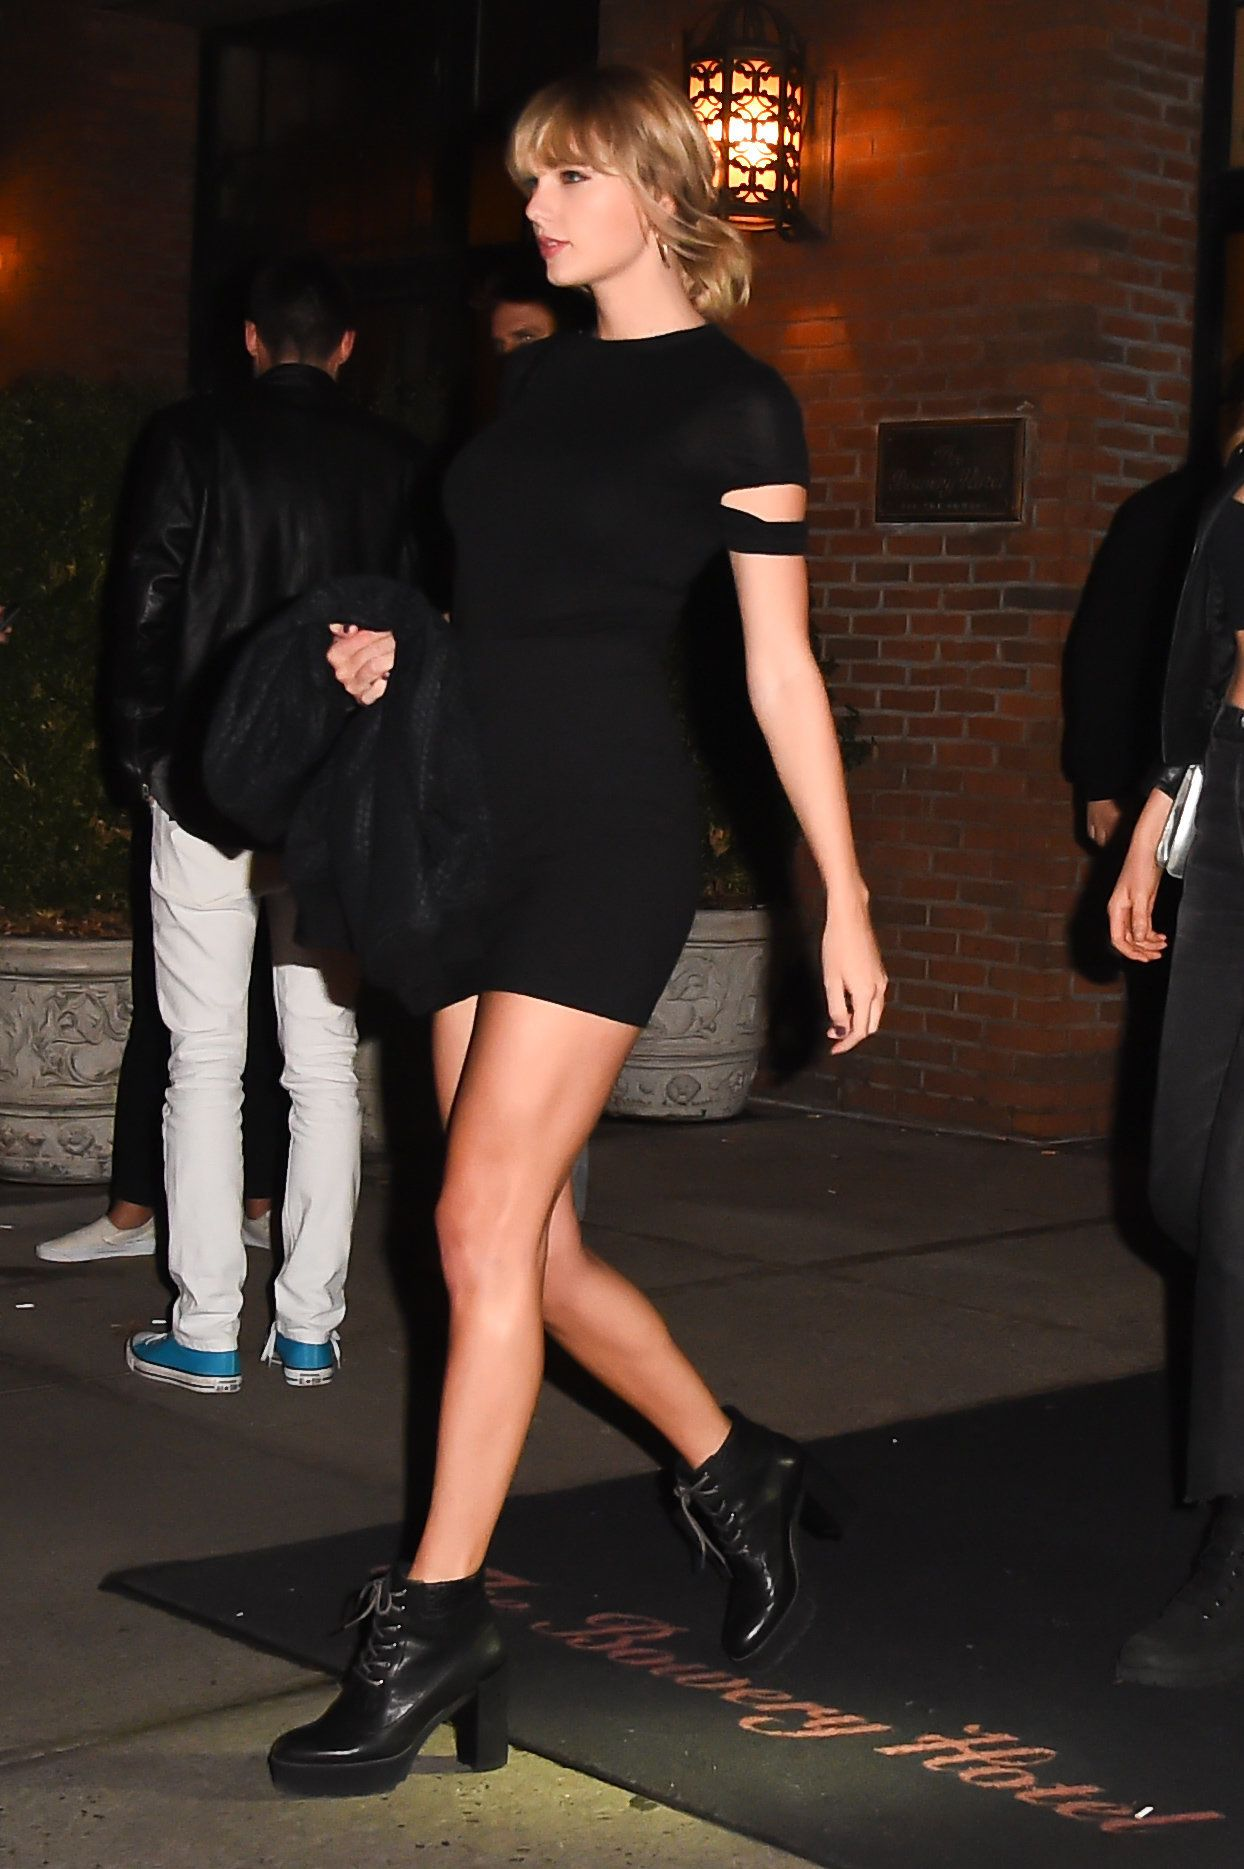 NEW YORK, NY - OCTOBER 12: Taylor Swift is seen outside 'Lovers Of Today on October 12, 2016 in New York City.  (Photo by Raymond Hall/GC Images)